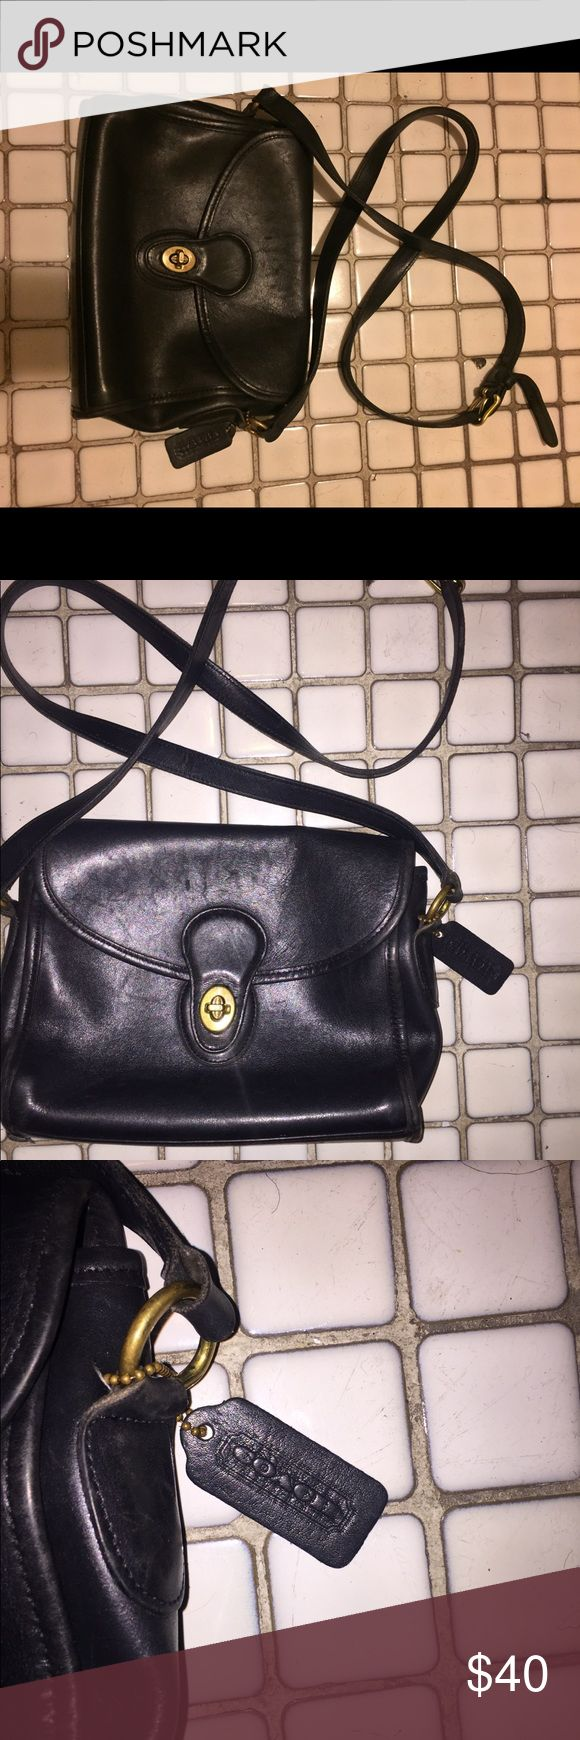 Black cross body bag Used but in fair condition cross body bag, it states coach I don't know if it's authentic. Adjustable straps, pics tell all. Good cross body bag! Make me an reasonable offer:) Coach Bags Crossbody Bags